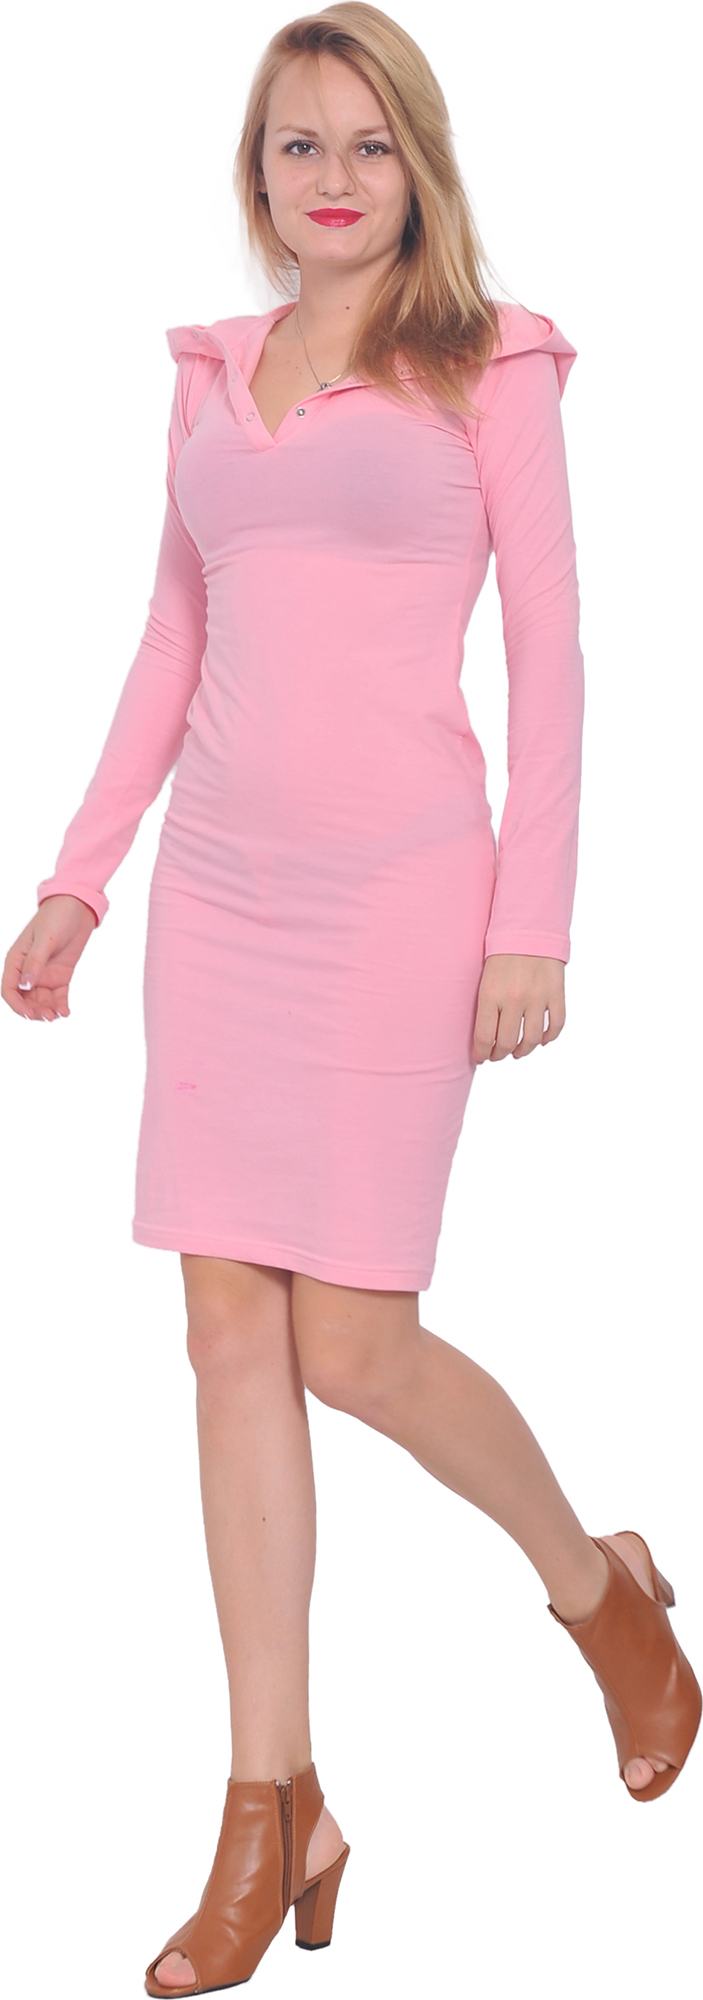 womens bodycon casual cotton long sleeve mini fitted dress